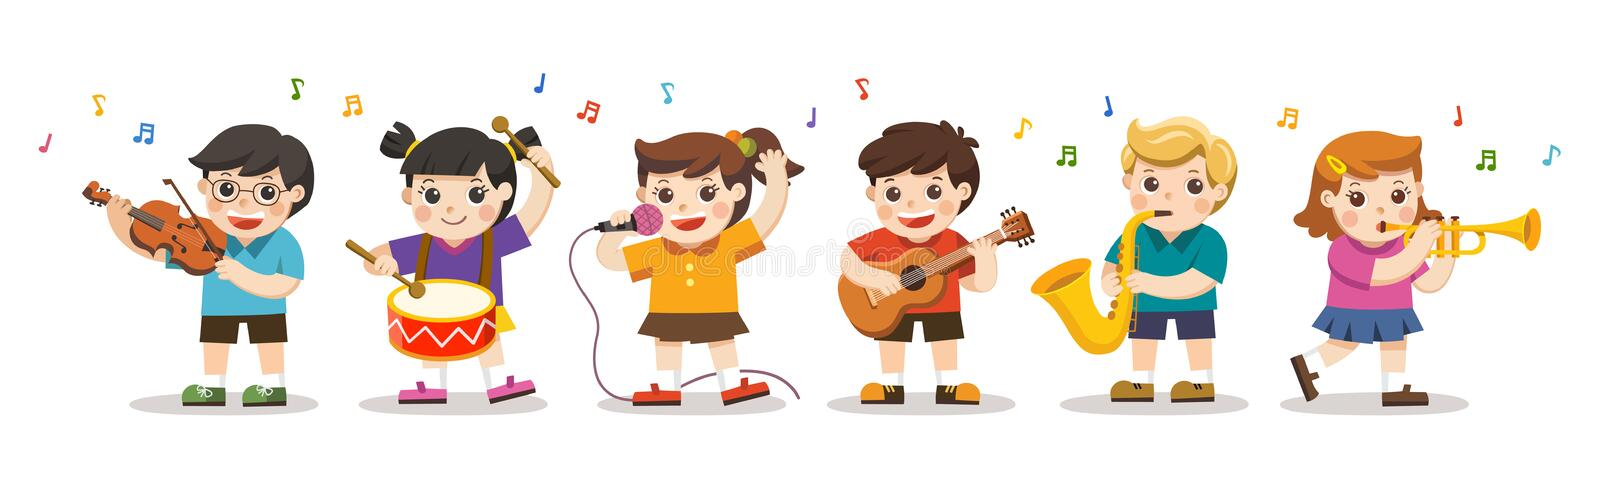 Set Illustration of Kids Playing Musical instruments. Hobbies and interests royalty free illustration